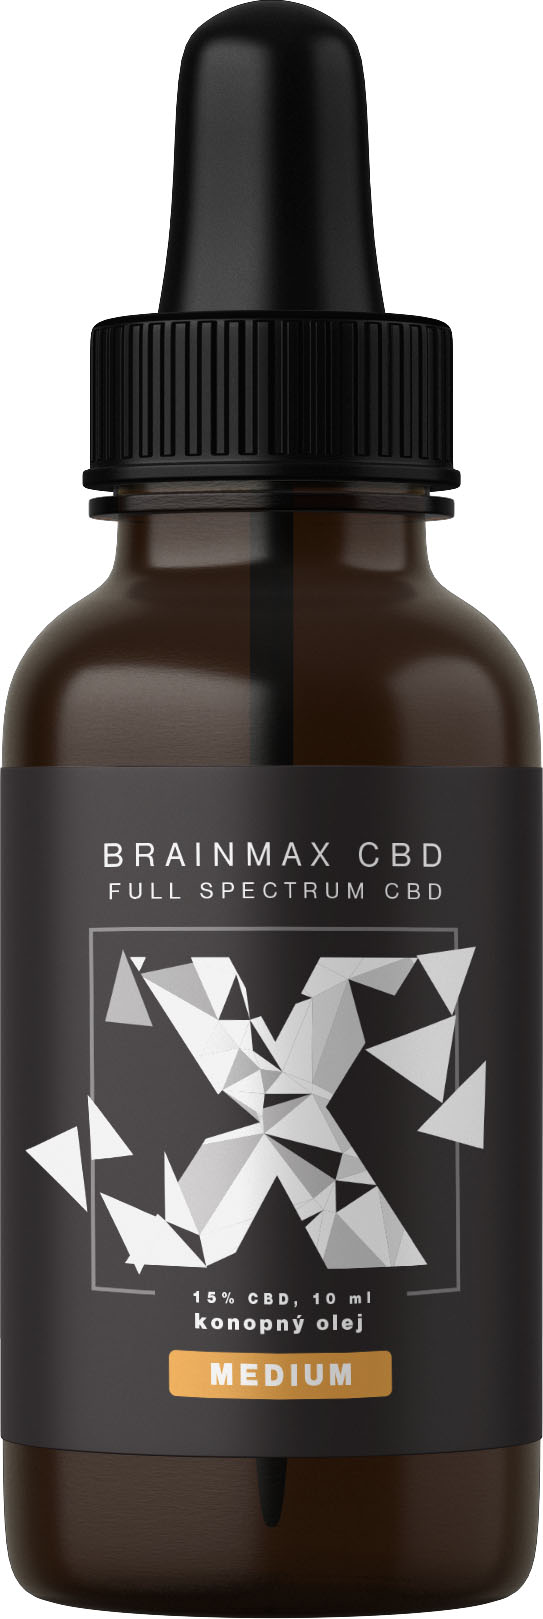 BrainMax CBD MEDIUM, 15%, 10 ml